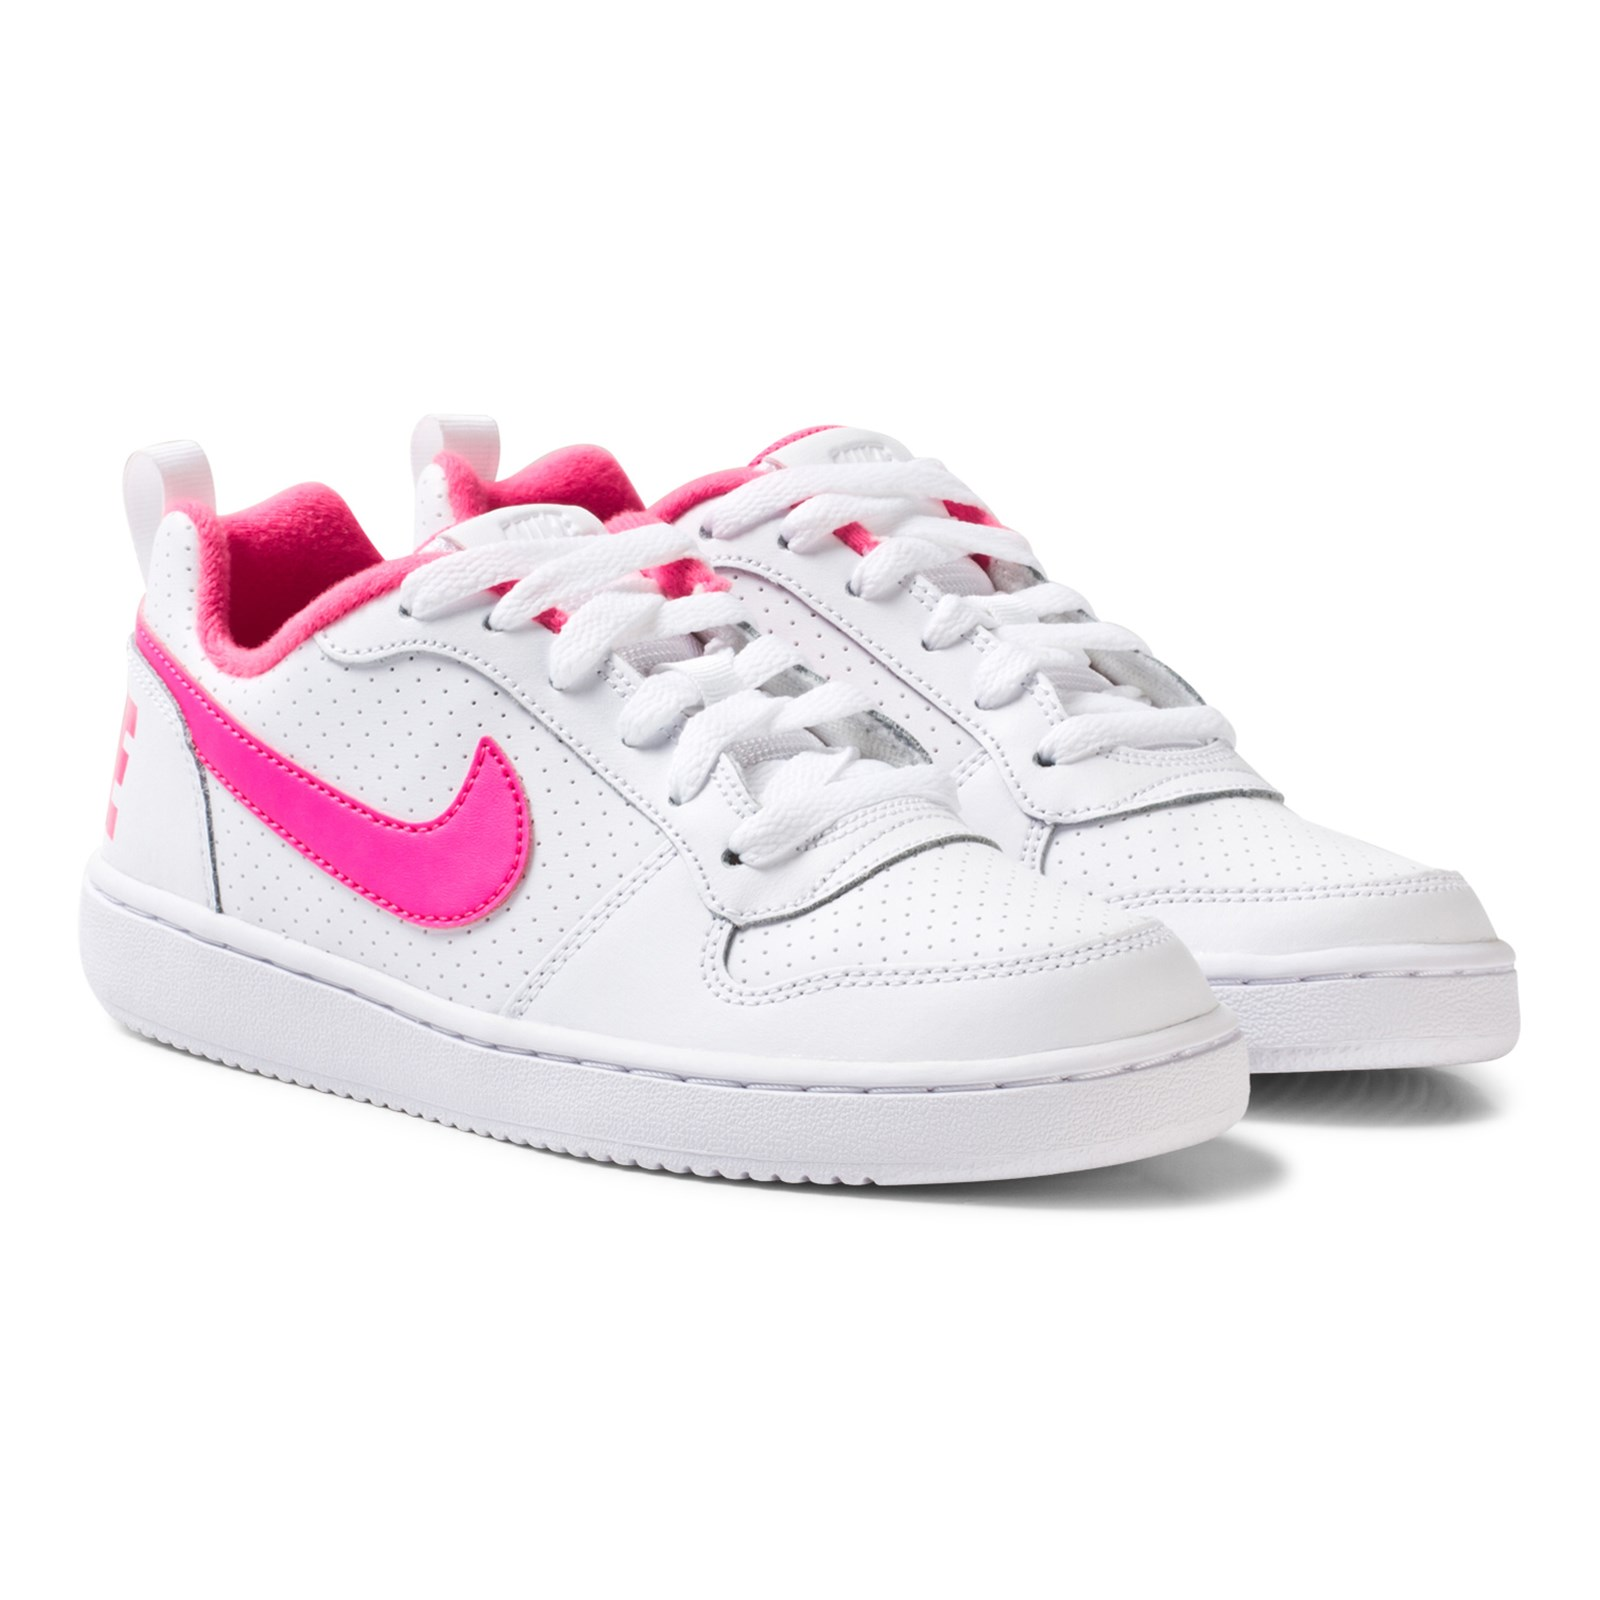 Concesión Grave espíritu  NIKE - White Nike Court Borough Low Junior Shoe - Babyshop.com